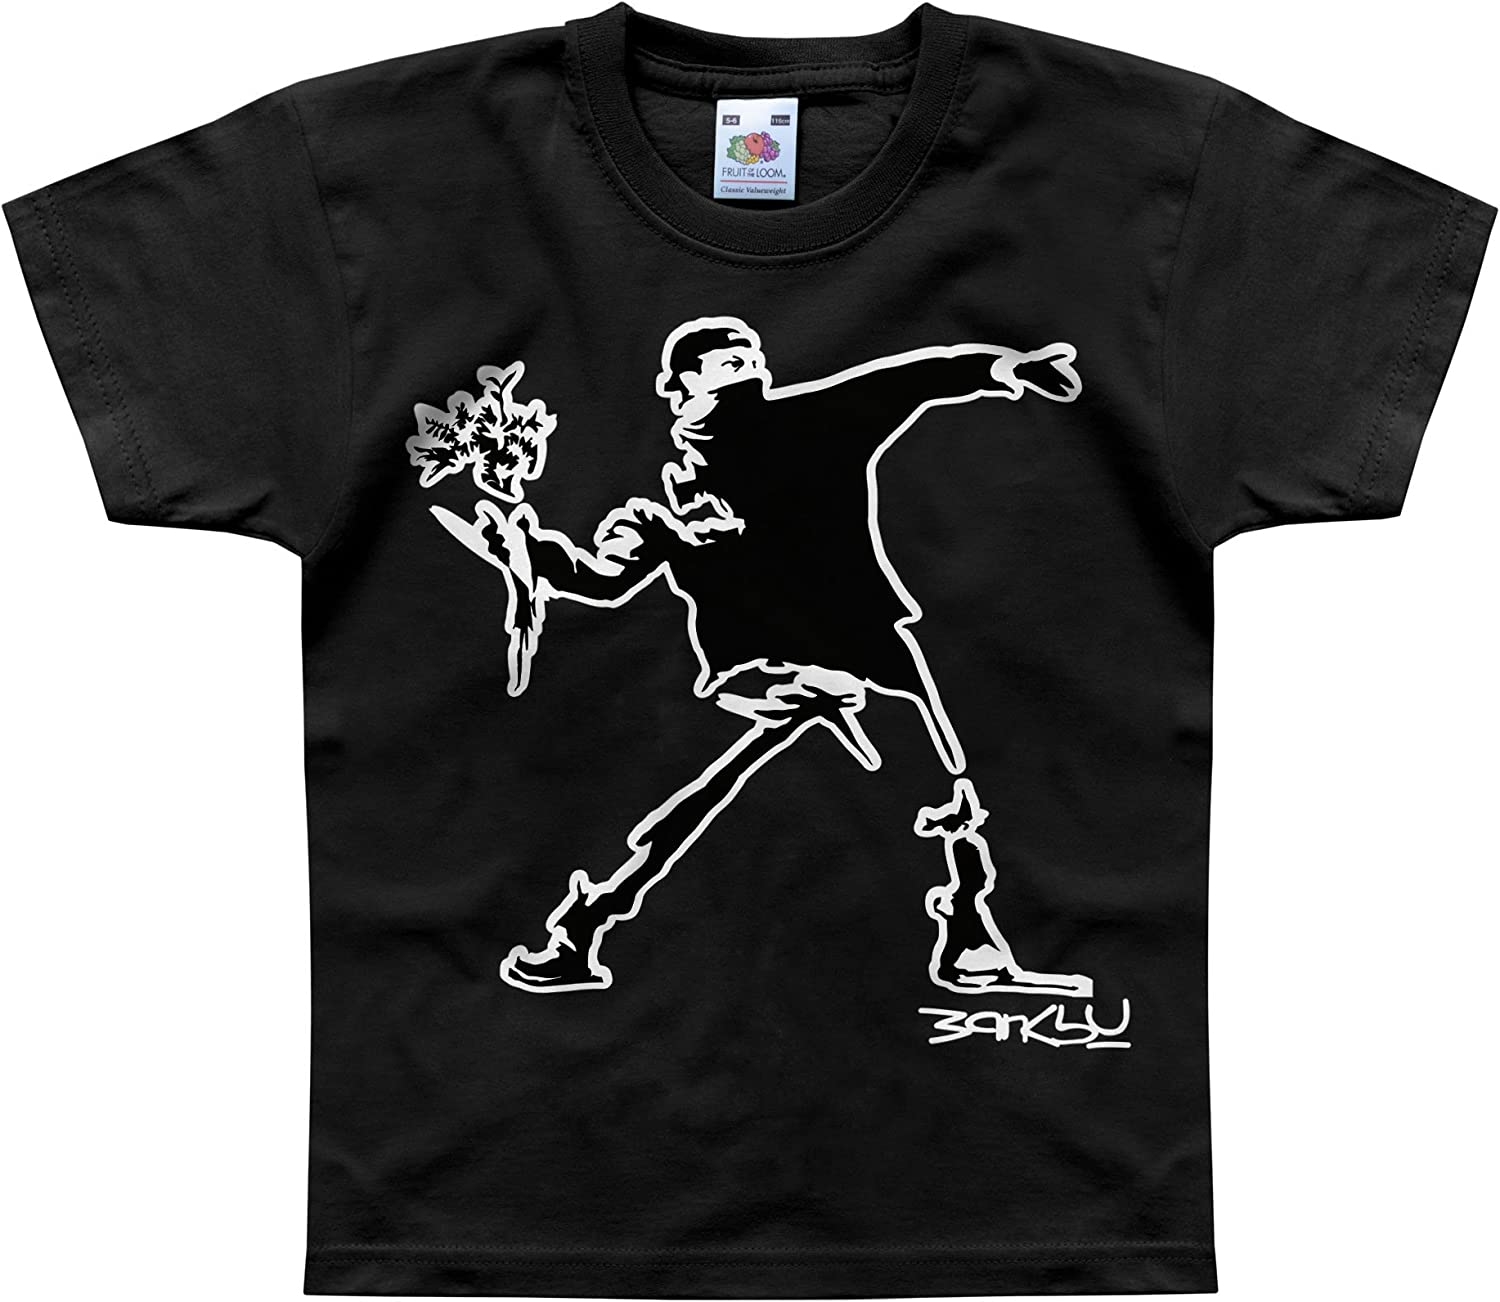 Nutees Banksy Flower Thrower Street Art Unisex Kids T Shirts Ages 1-14 Years